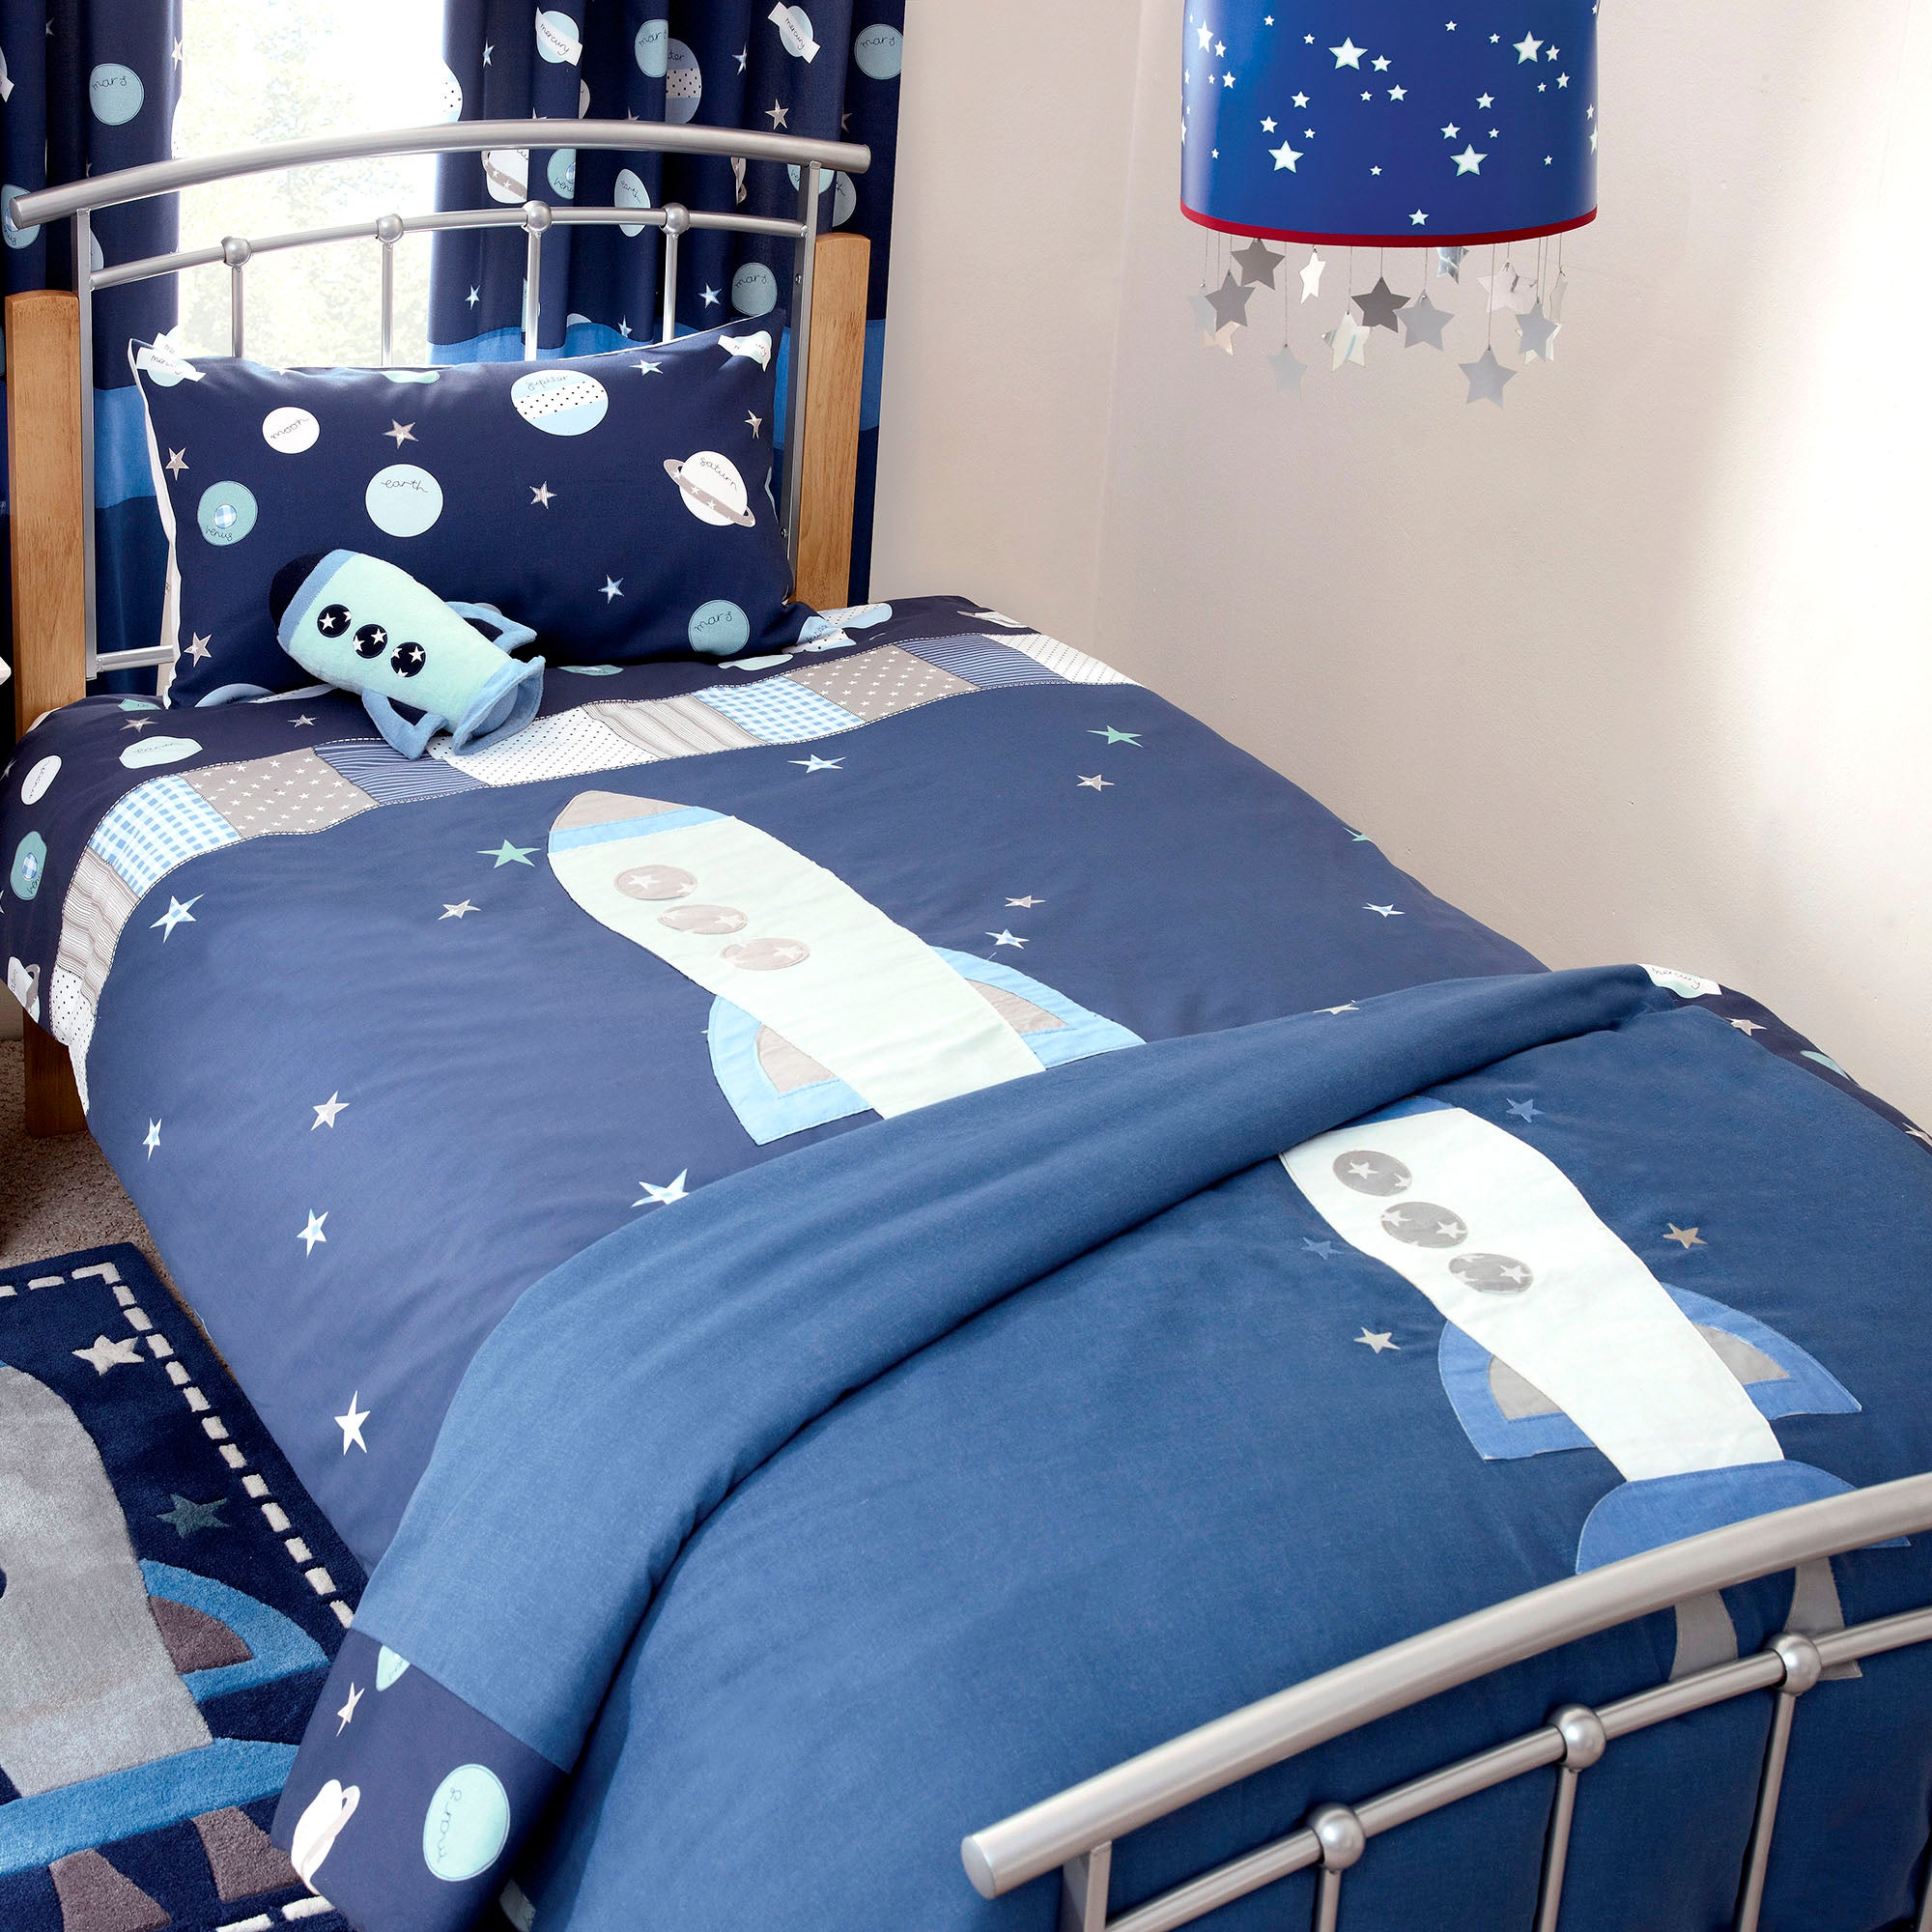 Space Mission Bedlinen Collection